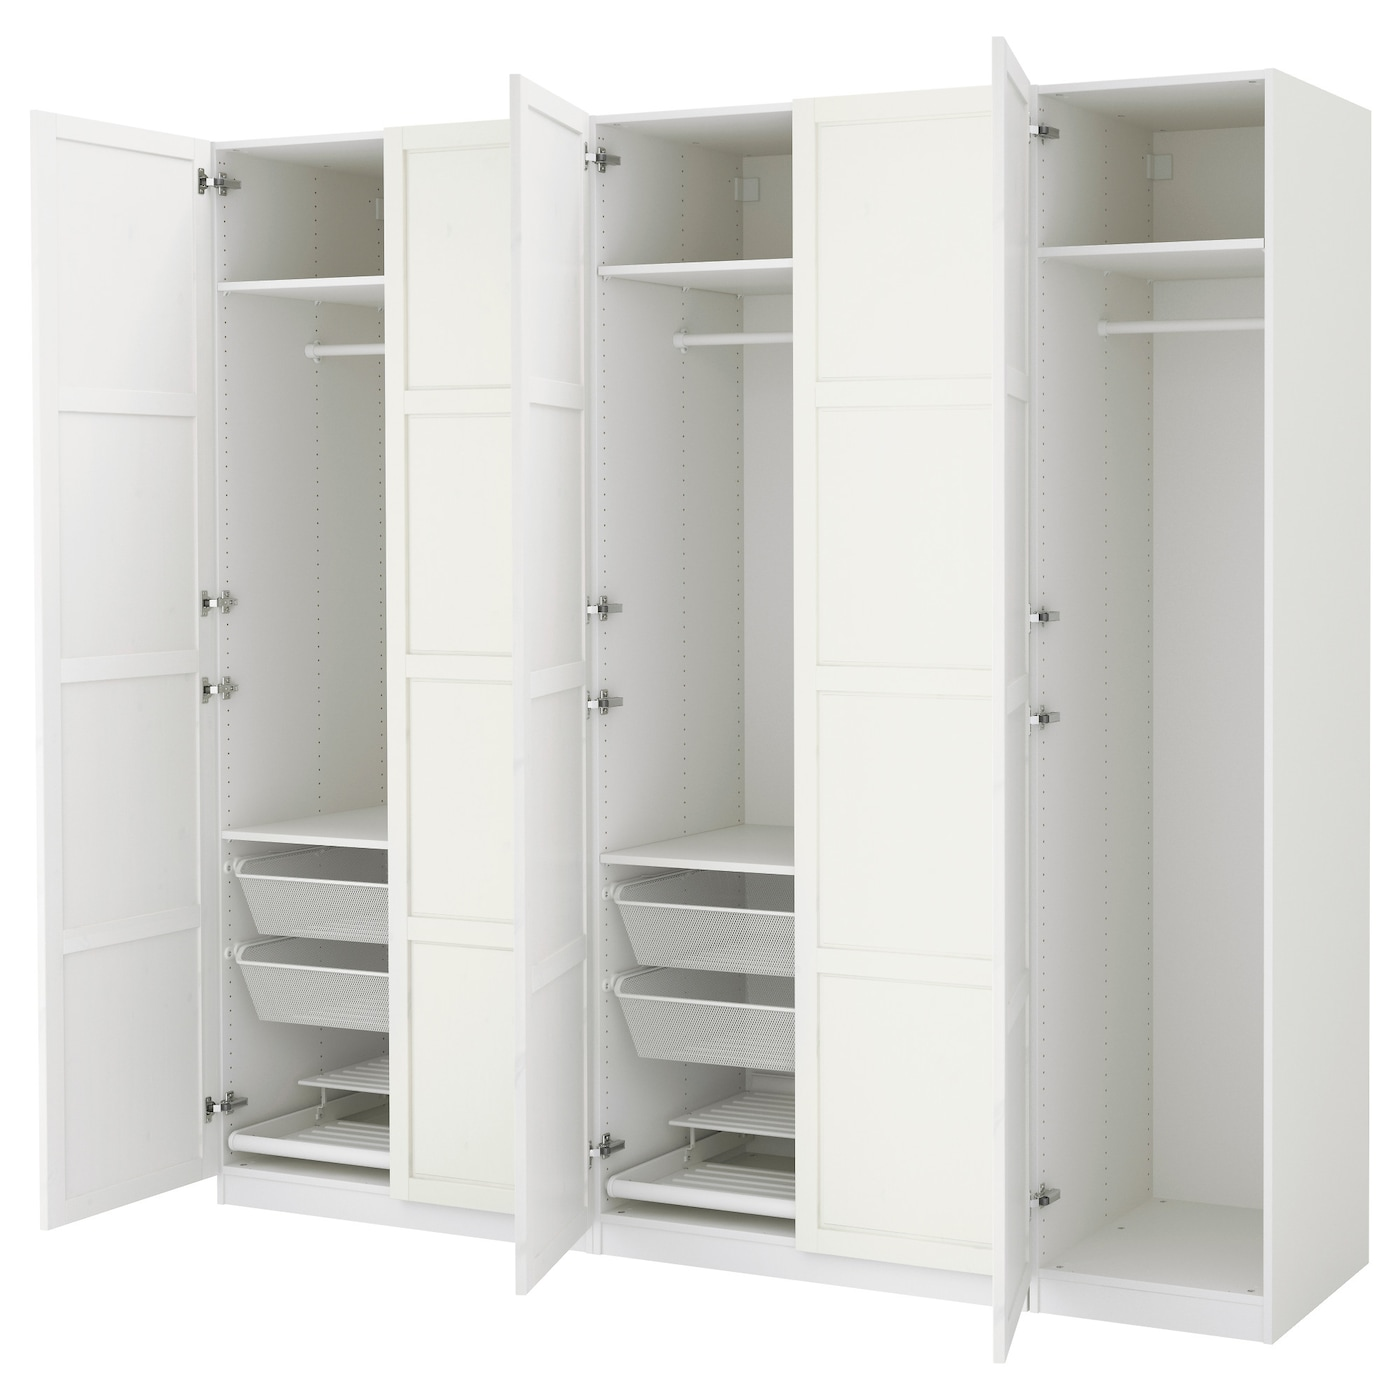 free try out of elevenfive shelves from mdf italia in 3d, vr and ar - Schlafzimmerschrank Wei